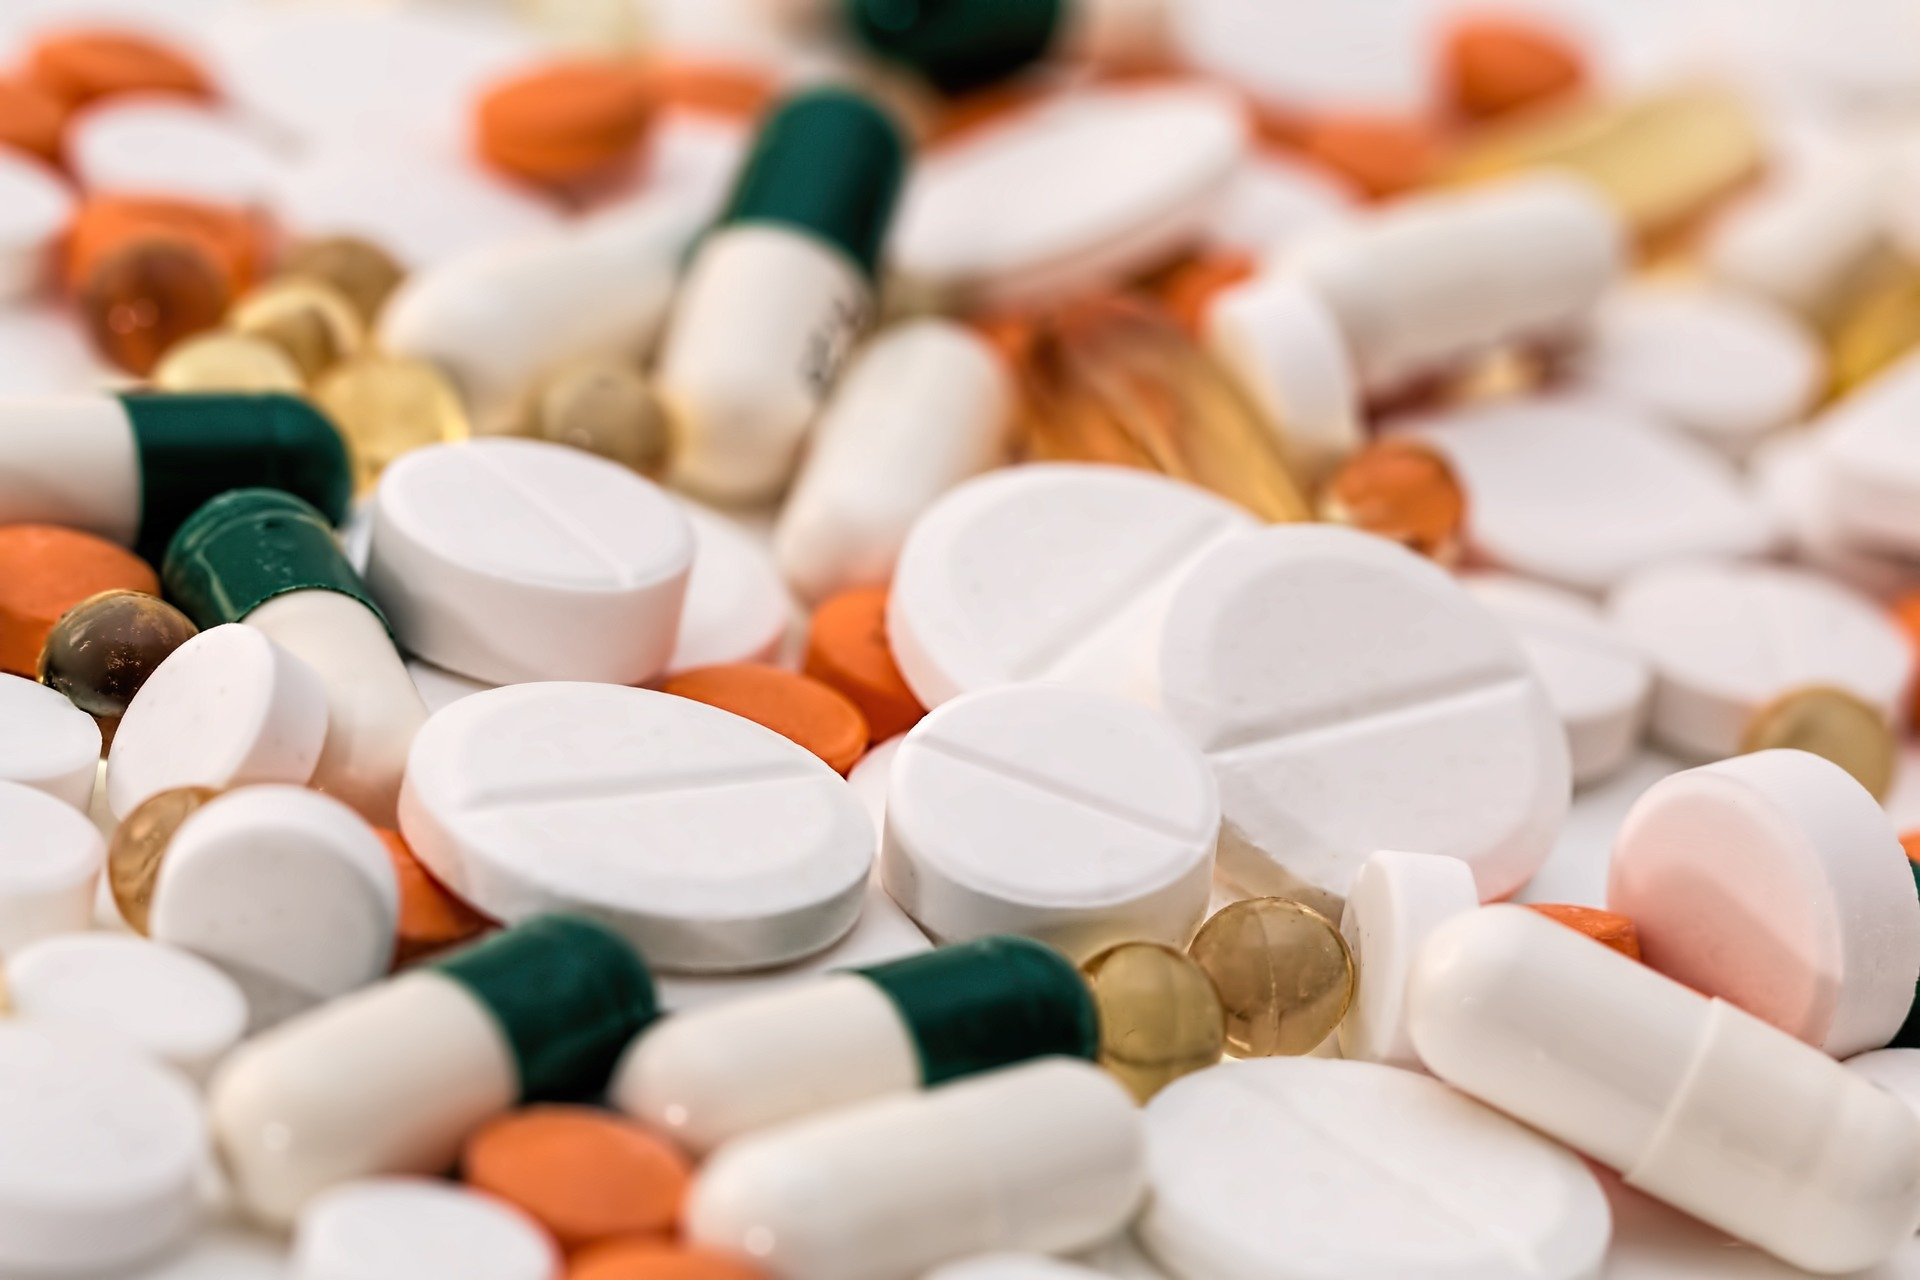 depression medication adherence is low